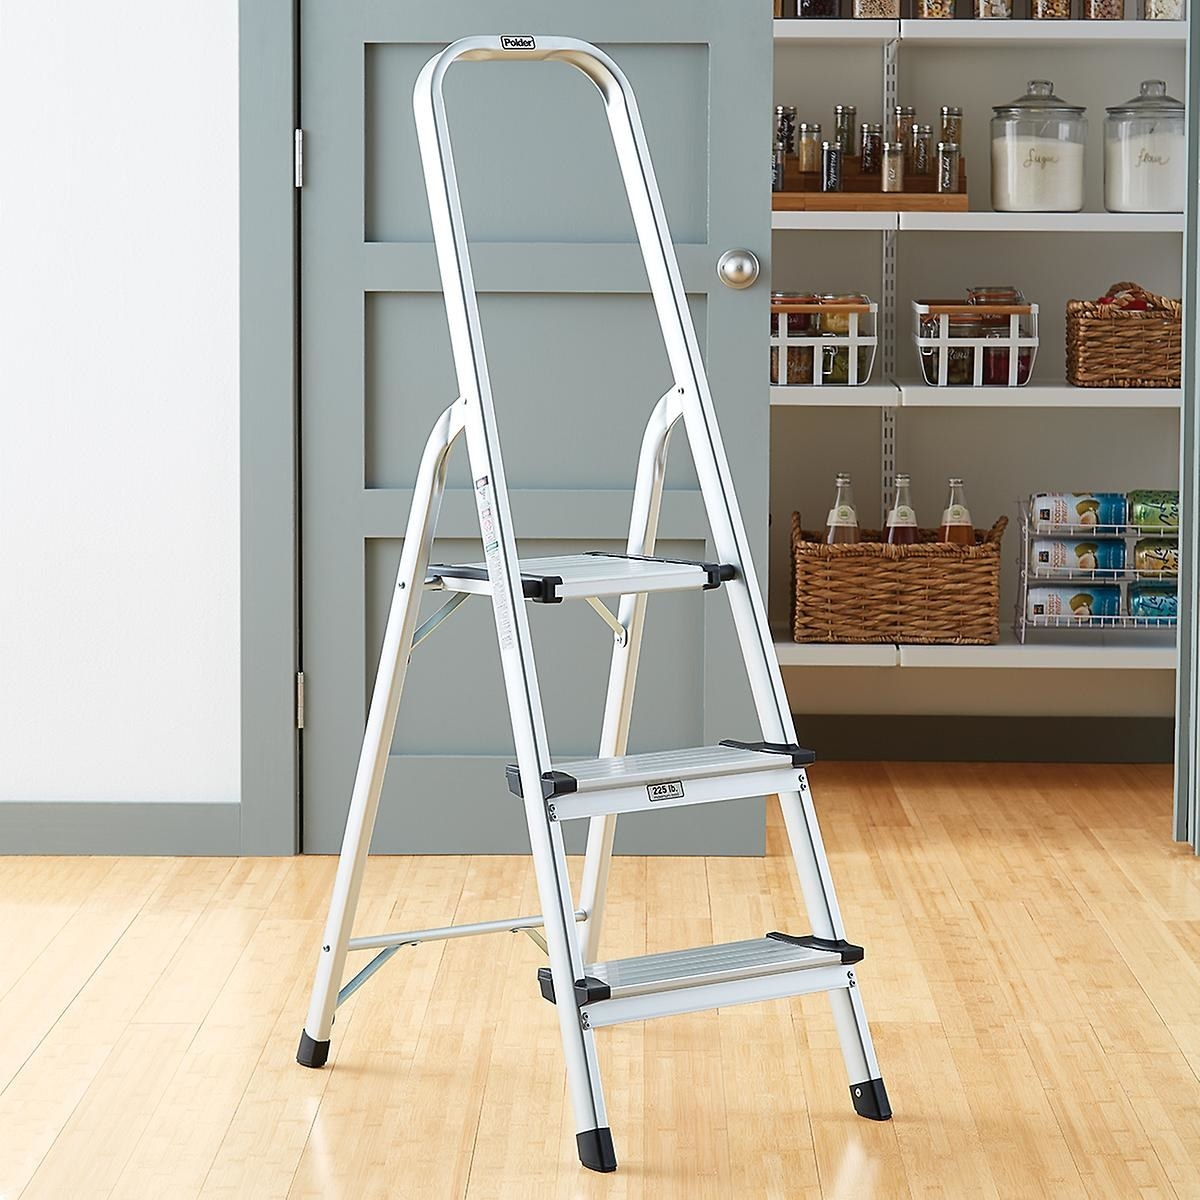 An unfolded metallic three-step ladder with black rubber edges and accents